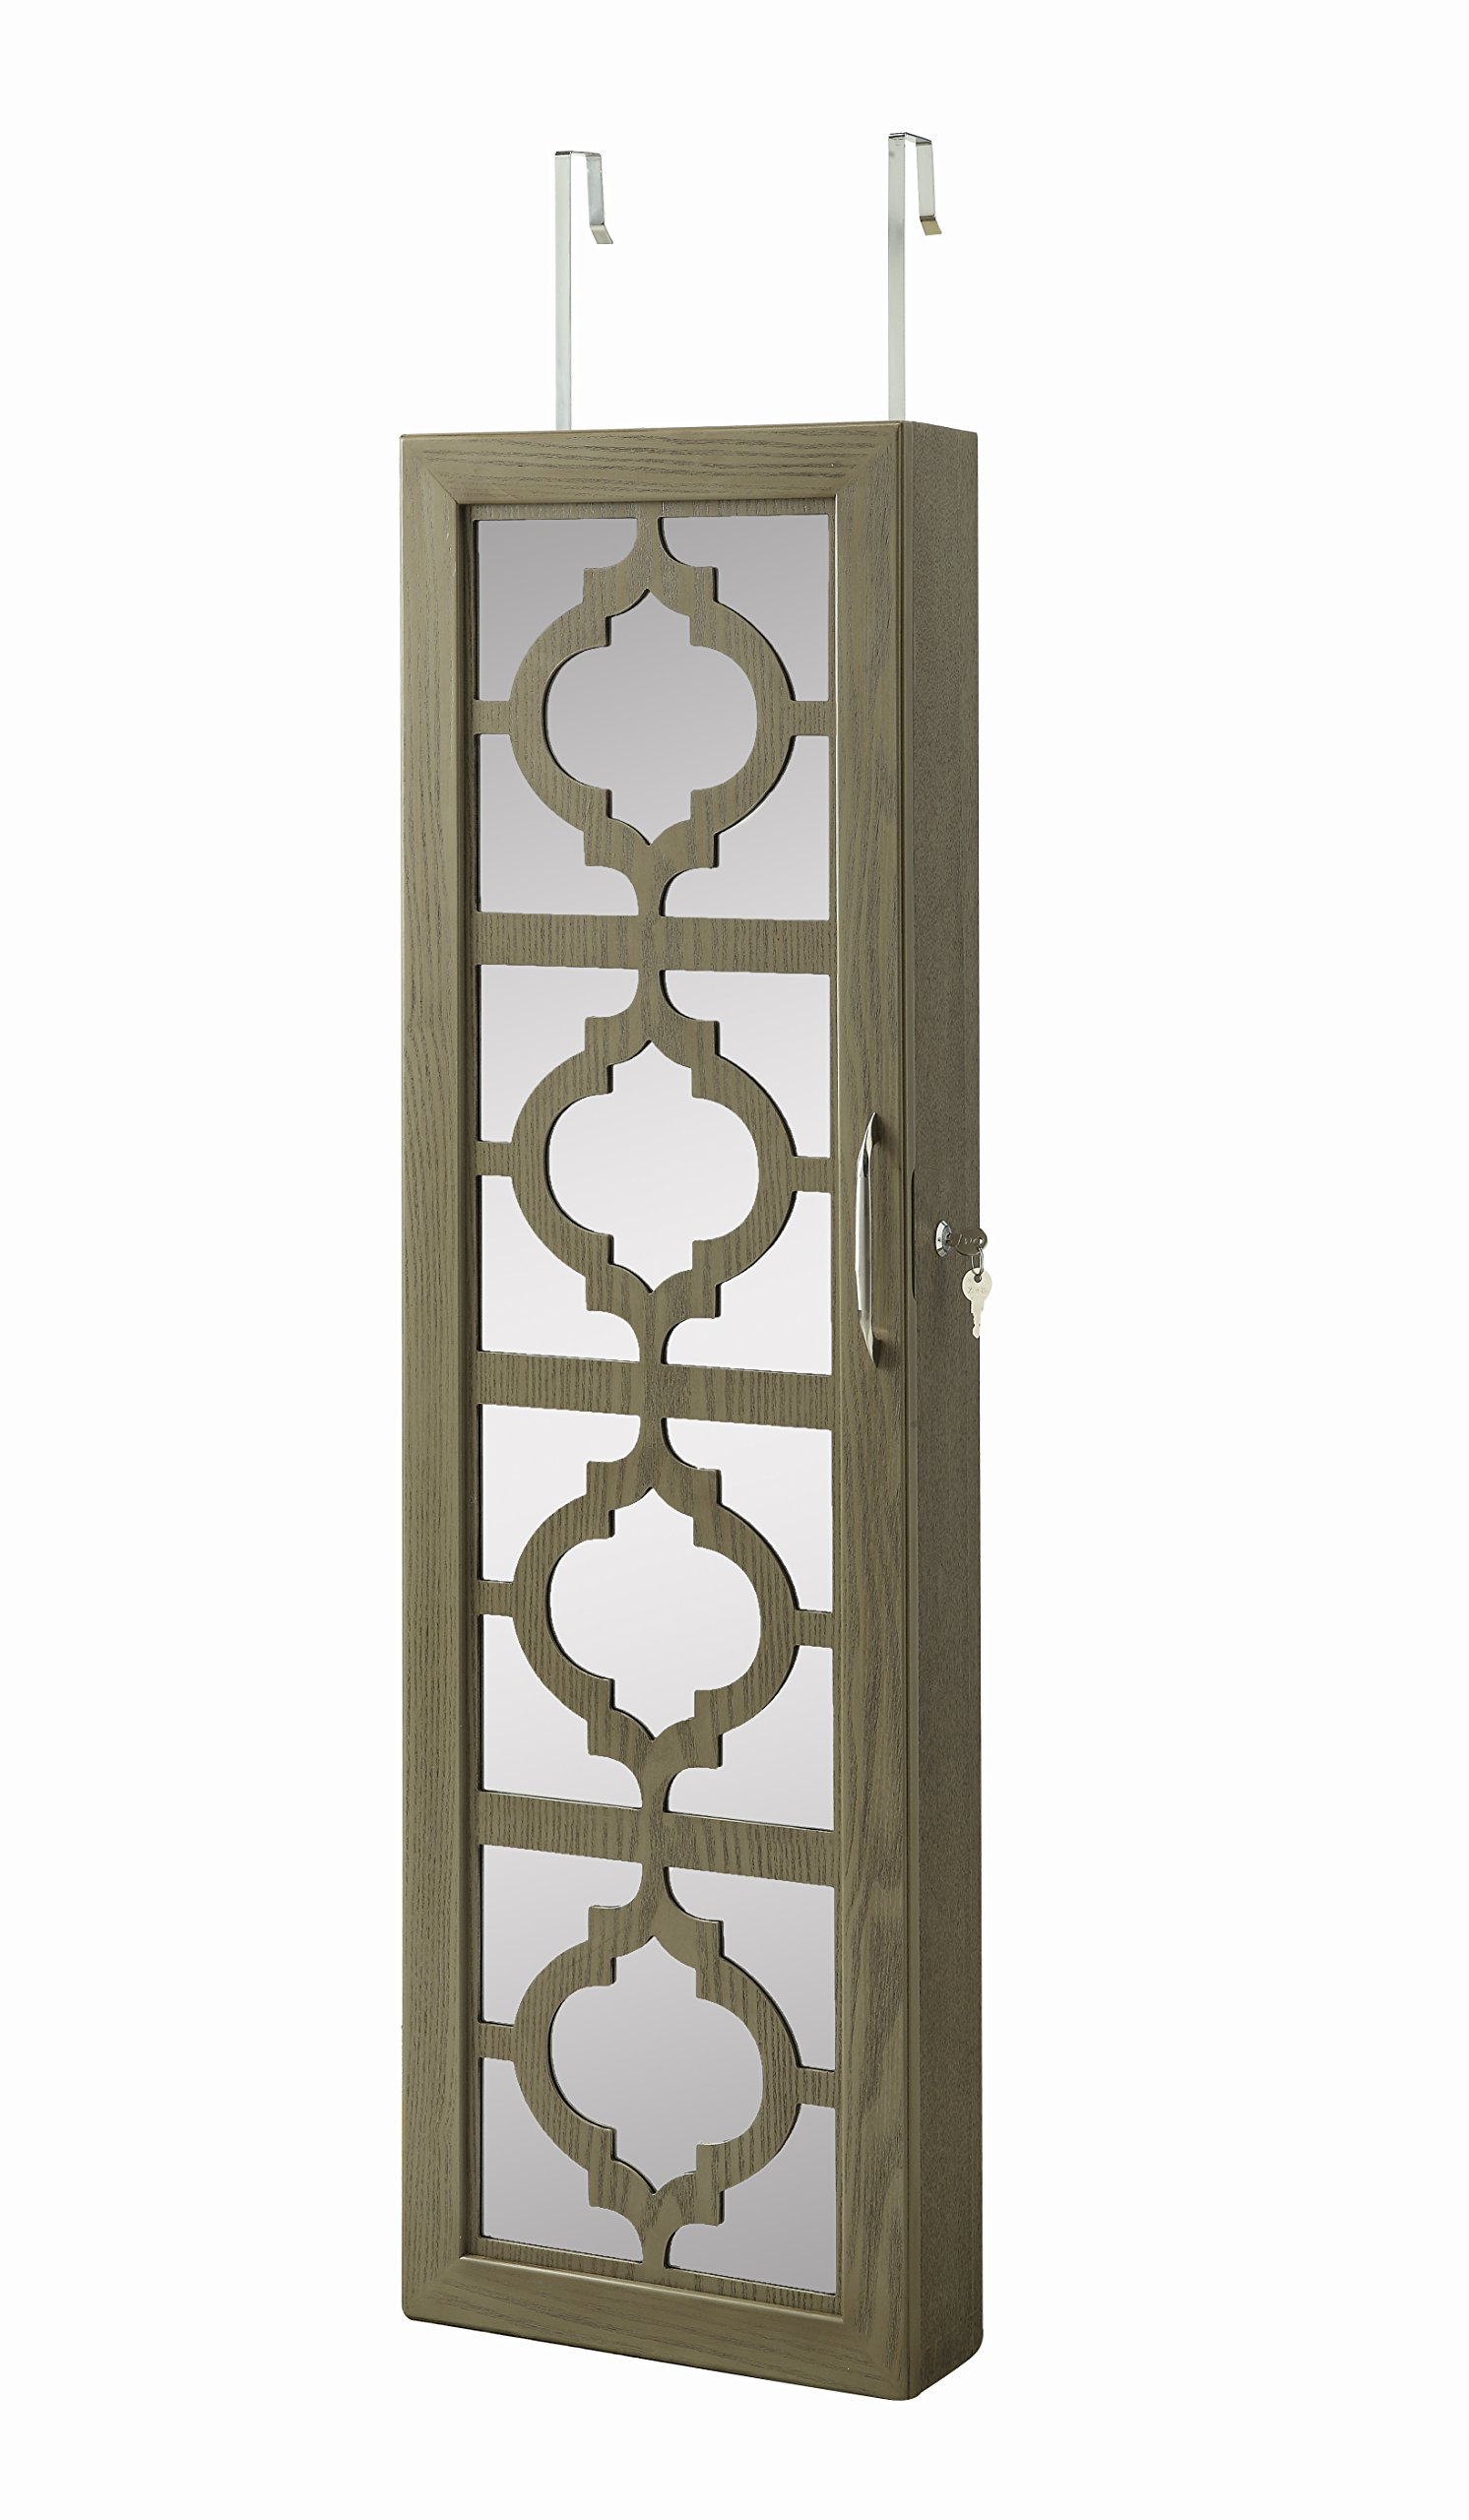 Lockable Wall Mounted Over the Door Jewelry Organizer Armoire Cabinet with Mirror Design Front and LED Lights by Abington Lane